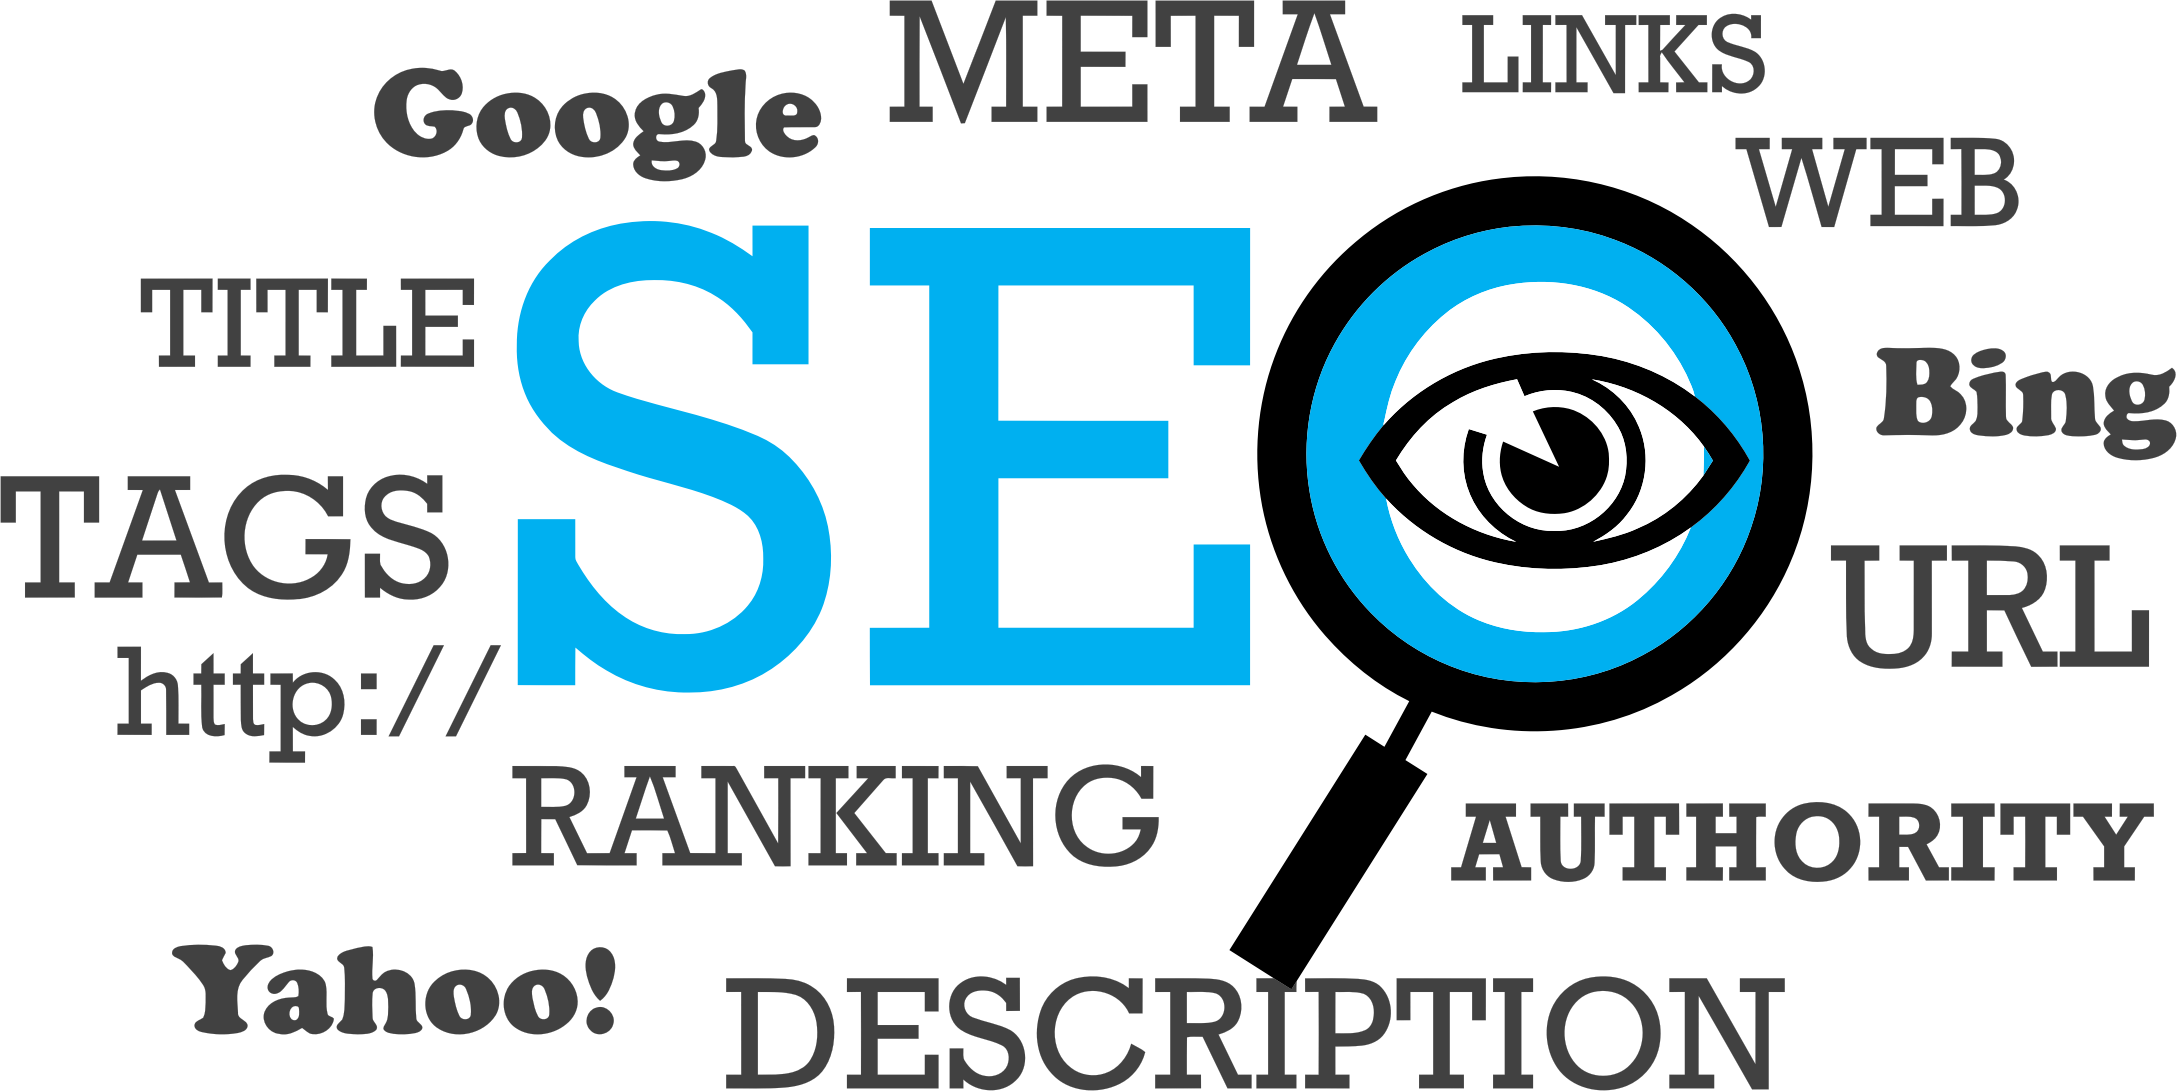 Search engine optimization tips. Website clipart url